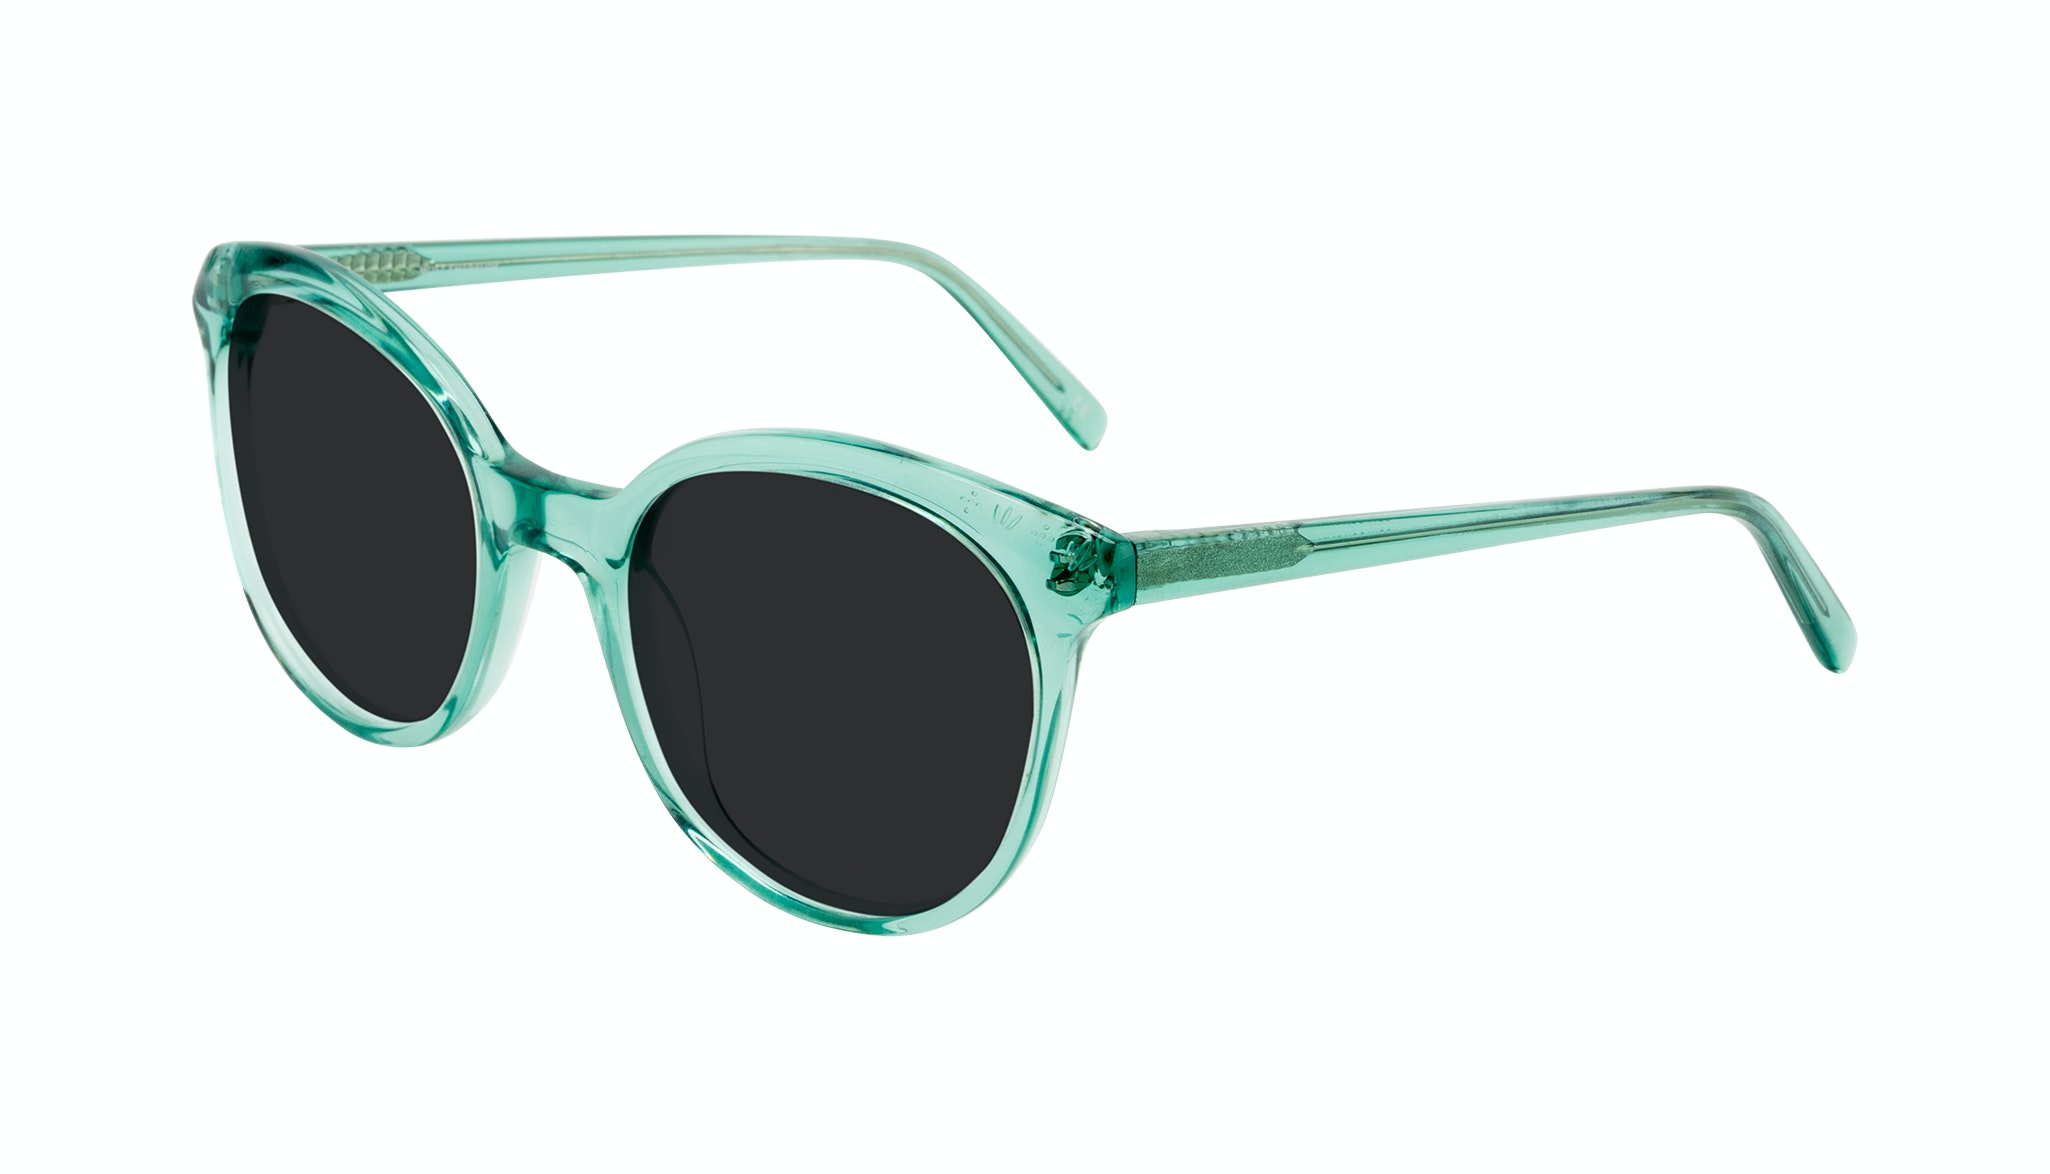 Affordable Fashion Glasses Round Sunglasses Women Must Emeraude Tilt